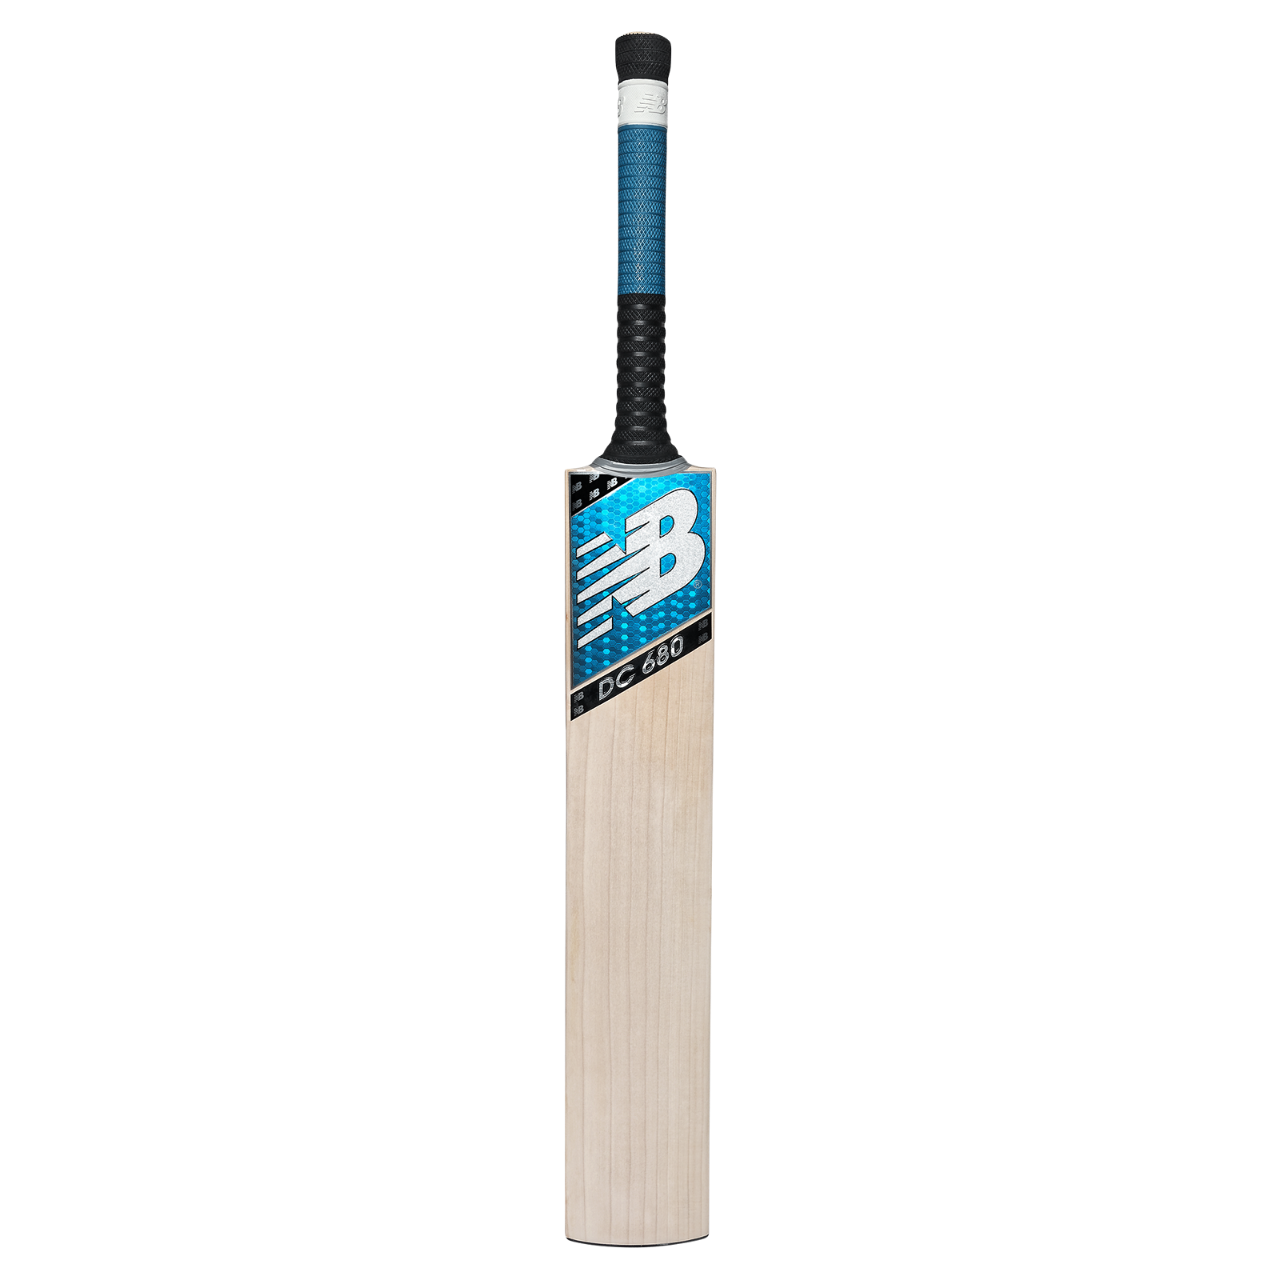 2020 New Balance DC 680 Cricket Bat